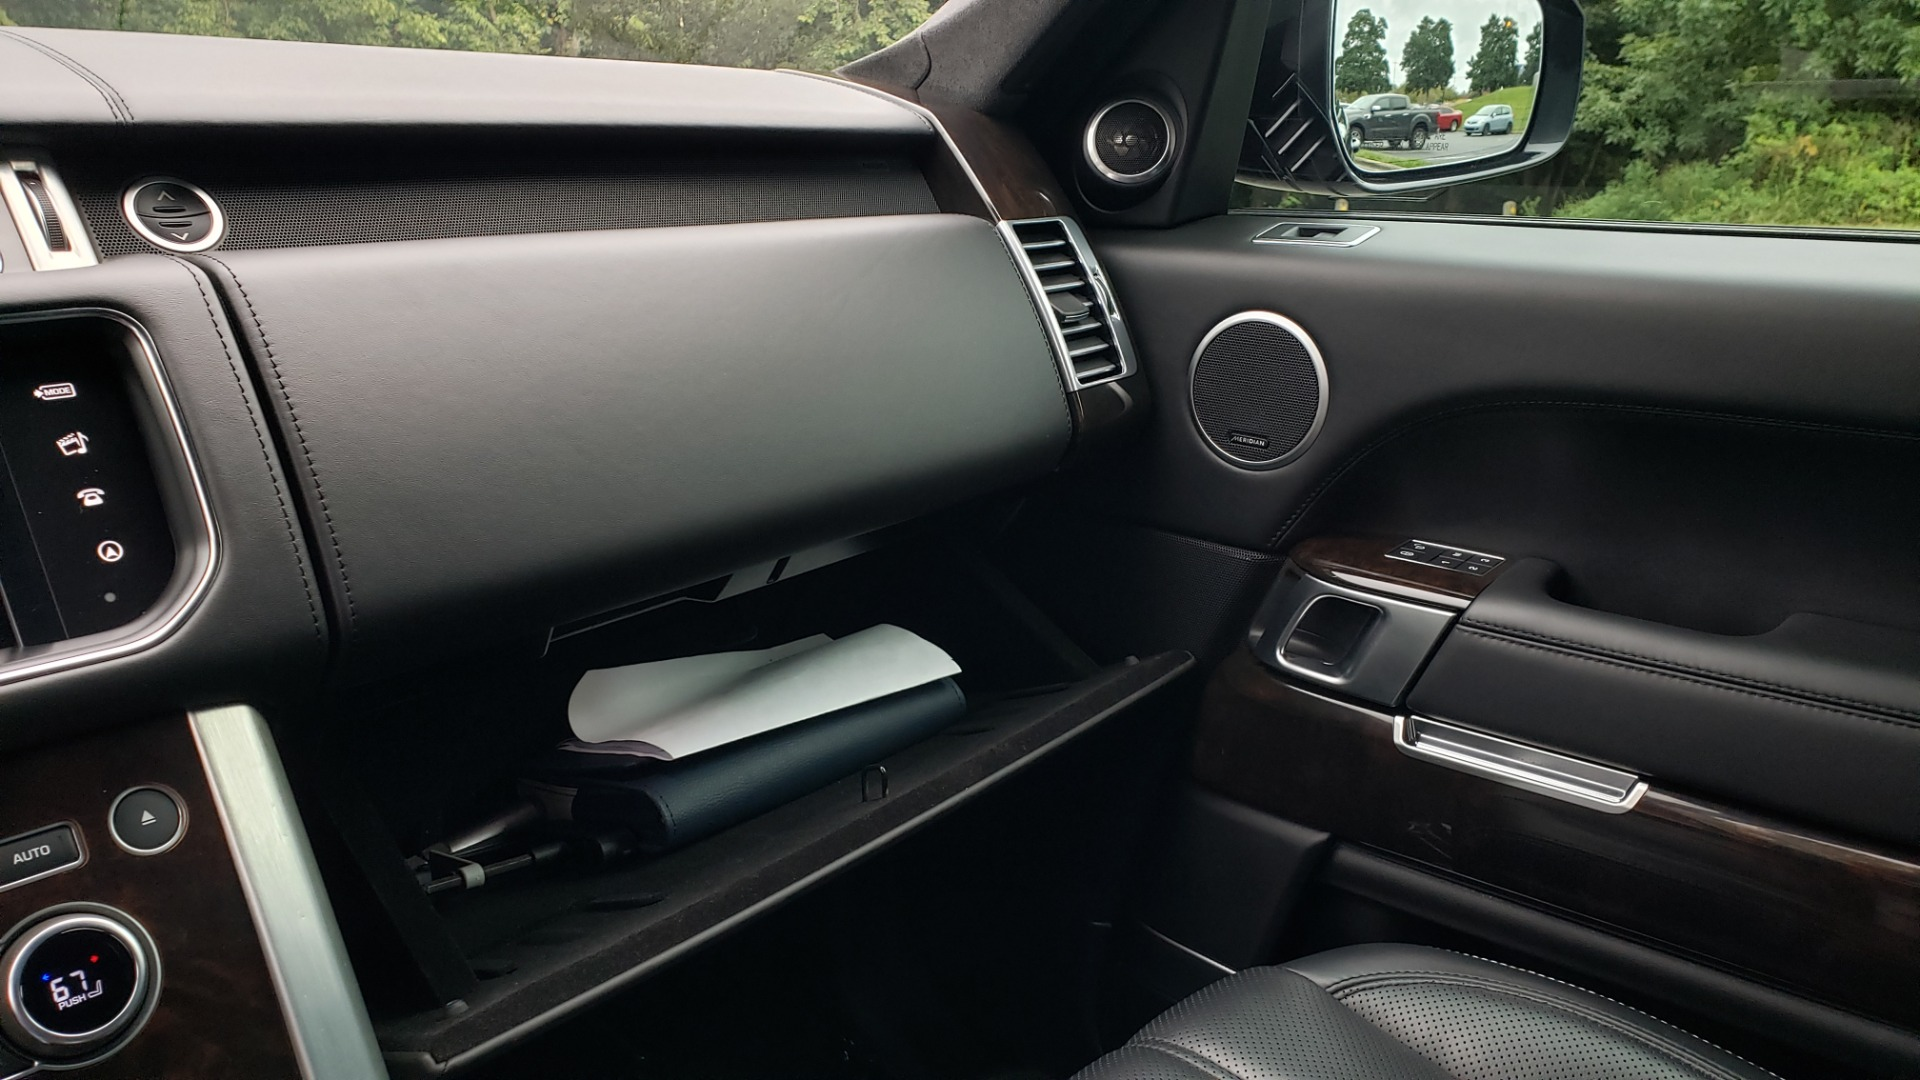 Used 2016 Land Rover RANGE ROVER AUTOBIOGRAPHY / SC-V8 / LWB / PANO-ROOF / NAV / MERIDIAN / ENT / REARVIEW for sale Sold at Formula Imports in Charlotte NC 28227 65